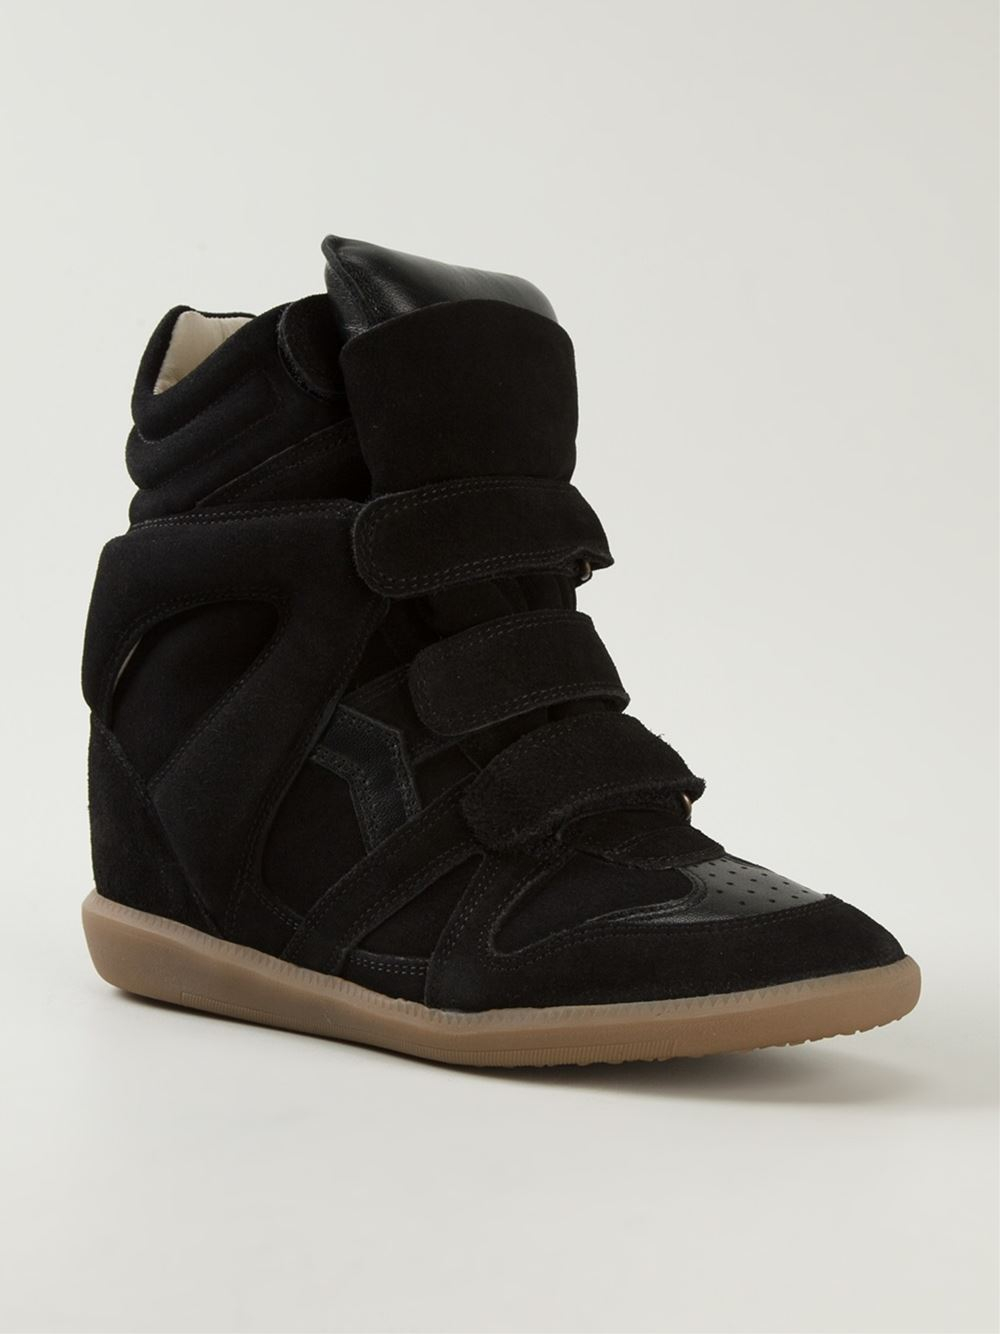 toile isabel marant toile 39 beckett 39 sneakers in black lyst. Black Bedroom Furniture Sets. Home Design Ideas